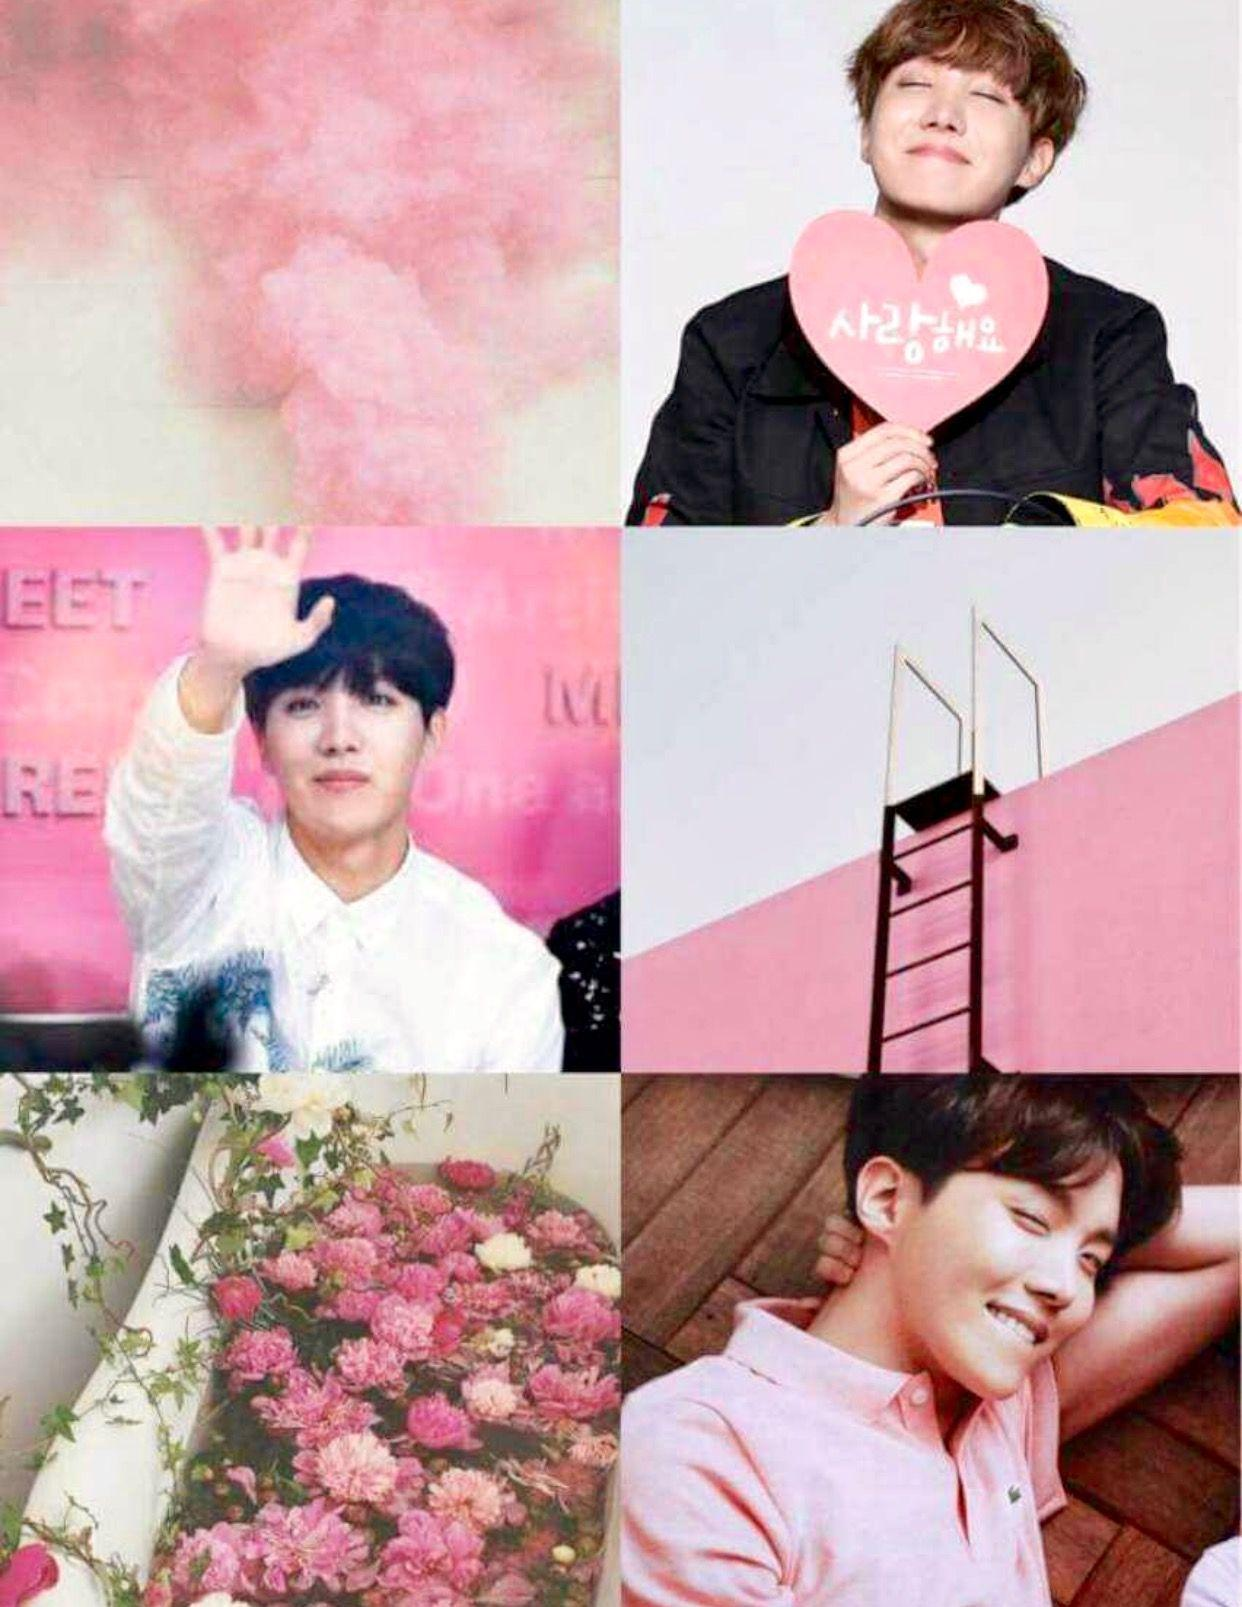 jhope aesthetic wallpapers